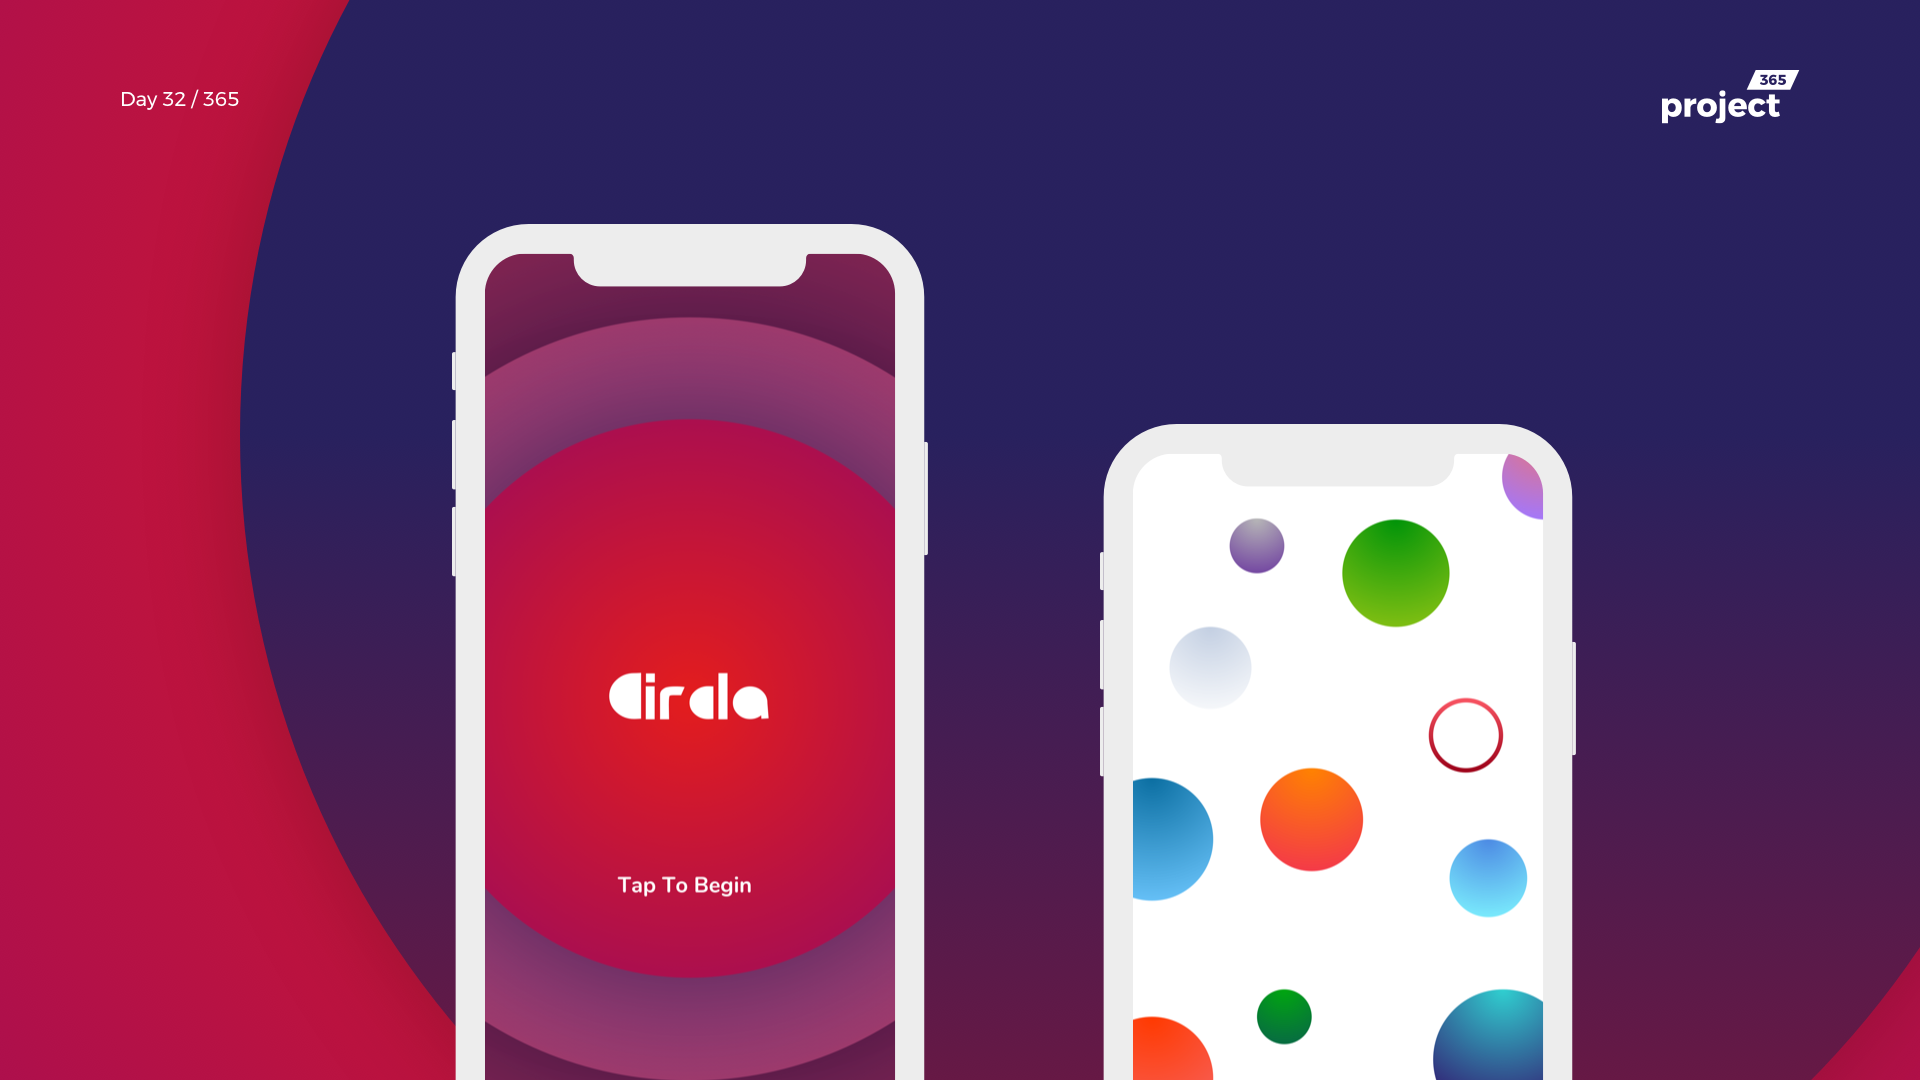 Day 32 – Circla – Fun Game Concept